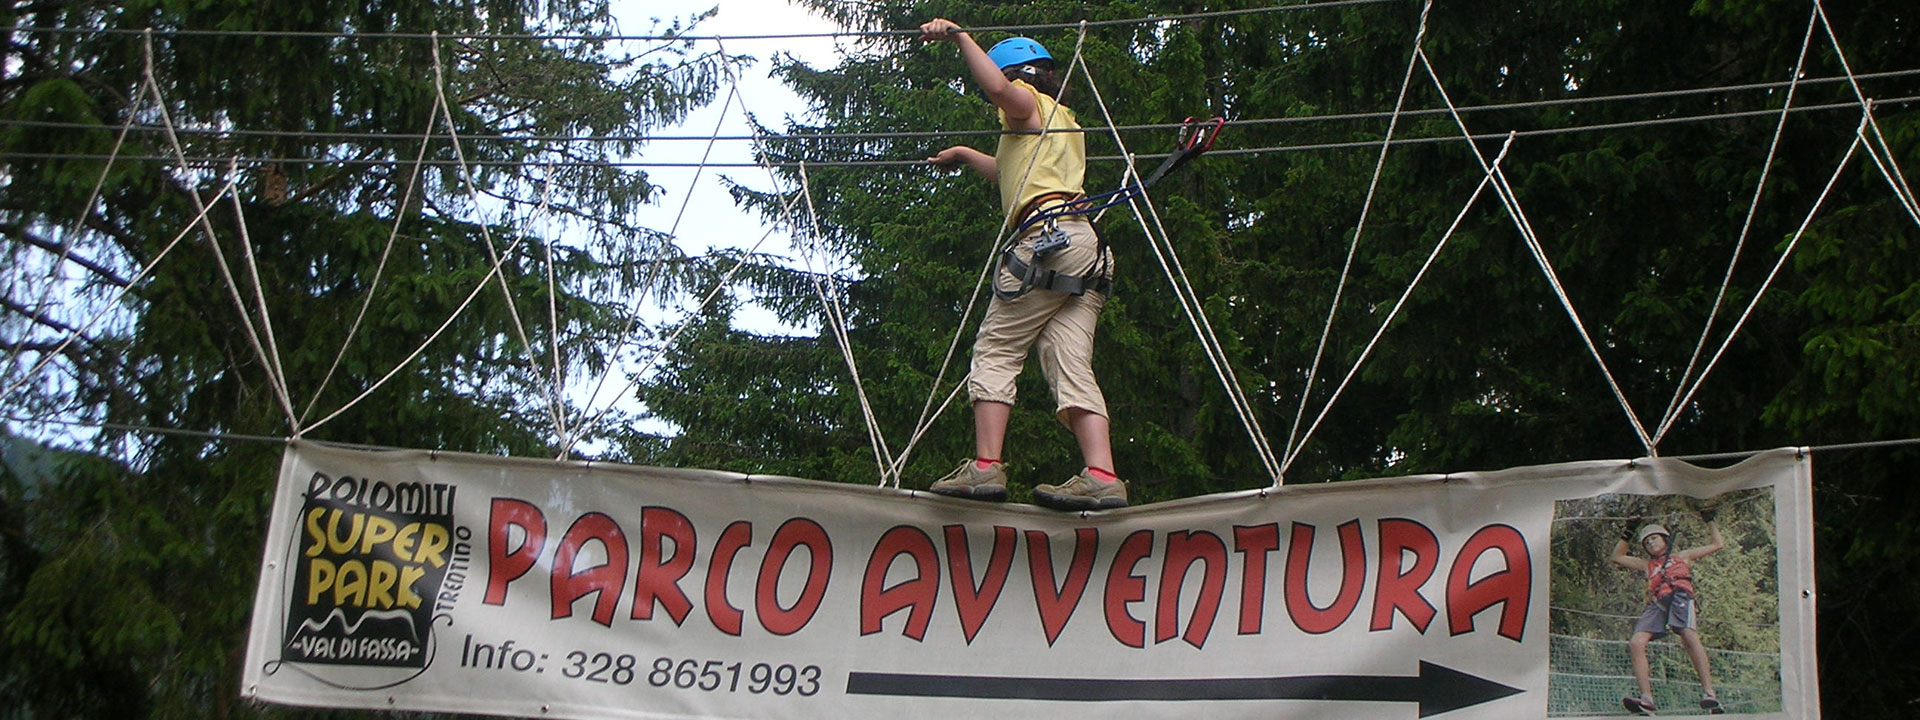 Dolomiti Action Adventure Park | Campitello di Fassa